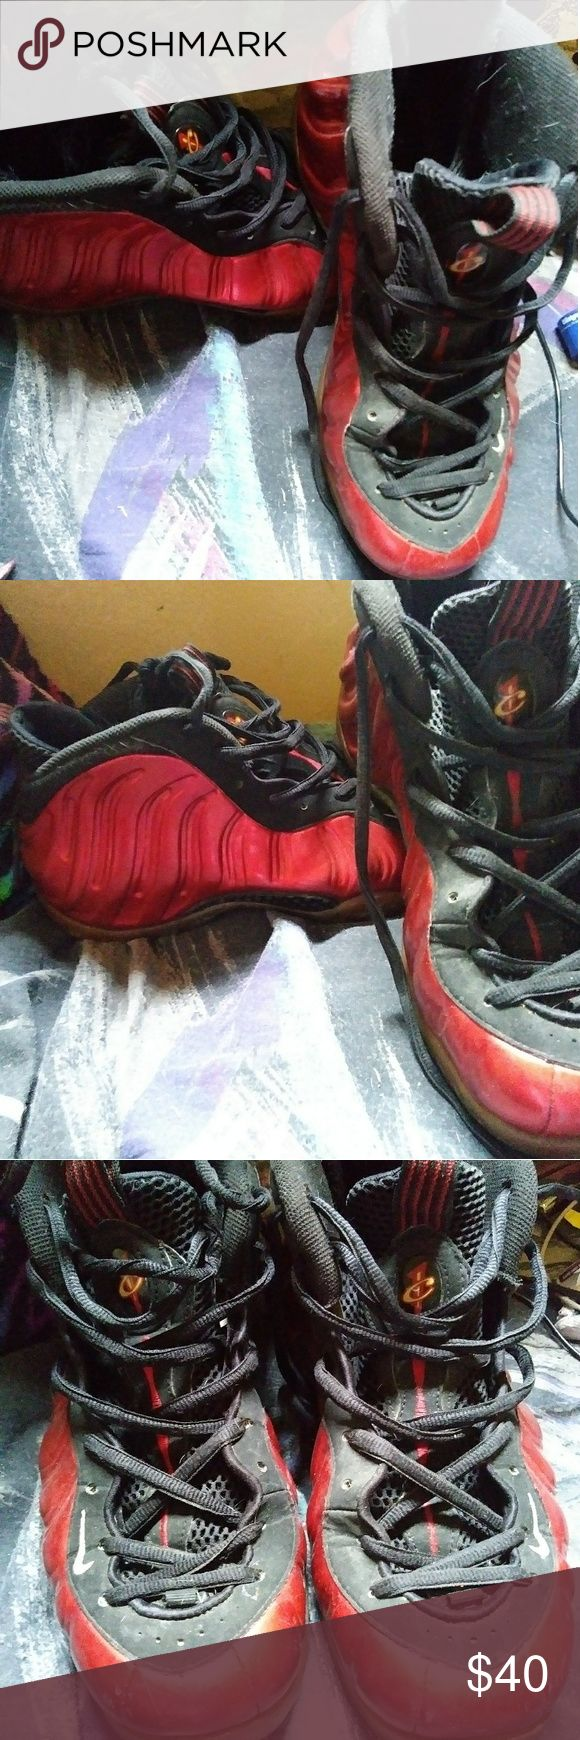 Red and black foamposites Minor scratches and need to be whiped down . all can be seen in pictures . 60 out of 100 condition wise . no trades , offers are welcome Nike Shoes Sneakers